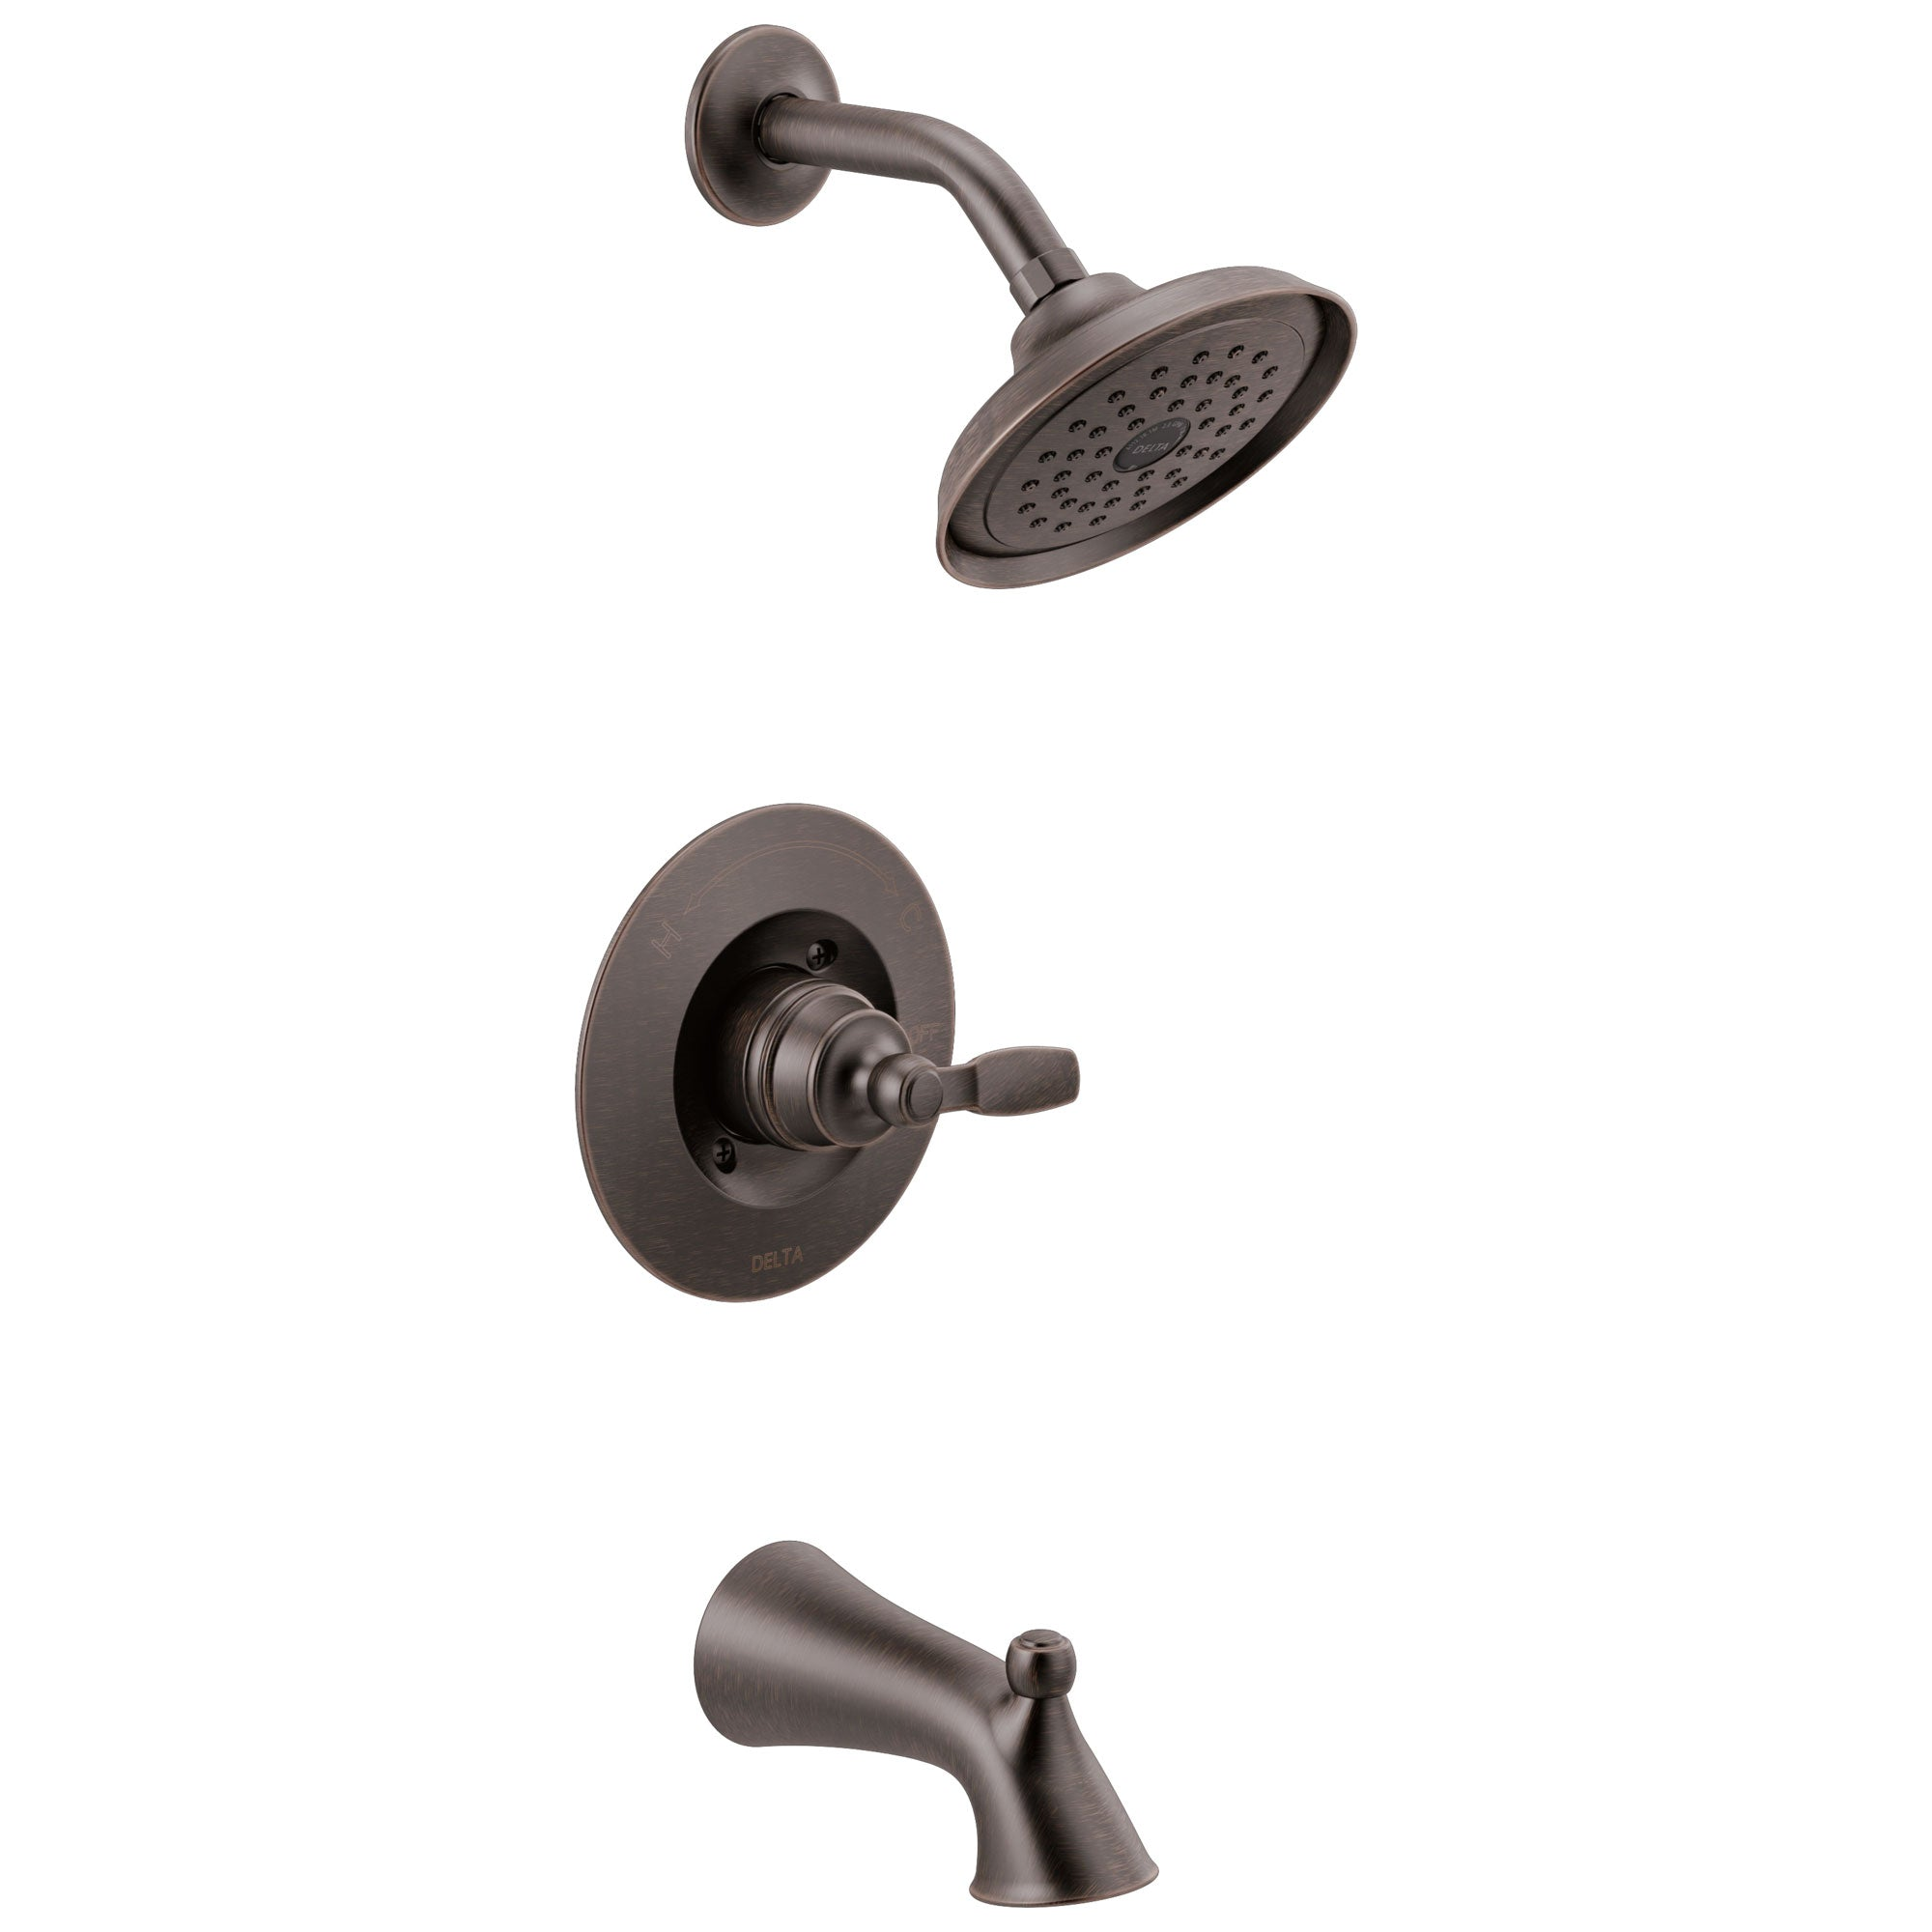 Delta Woodhurst Venetian Bronze Finish Single Handle Tub/Shower Combination Faucet Trim Kit (Requires Valve) DT14432RB